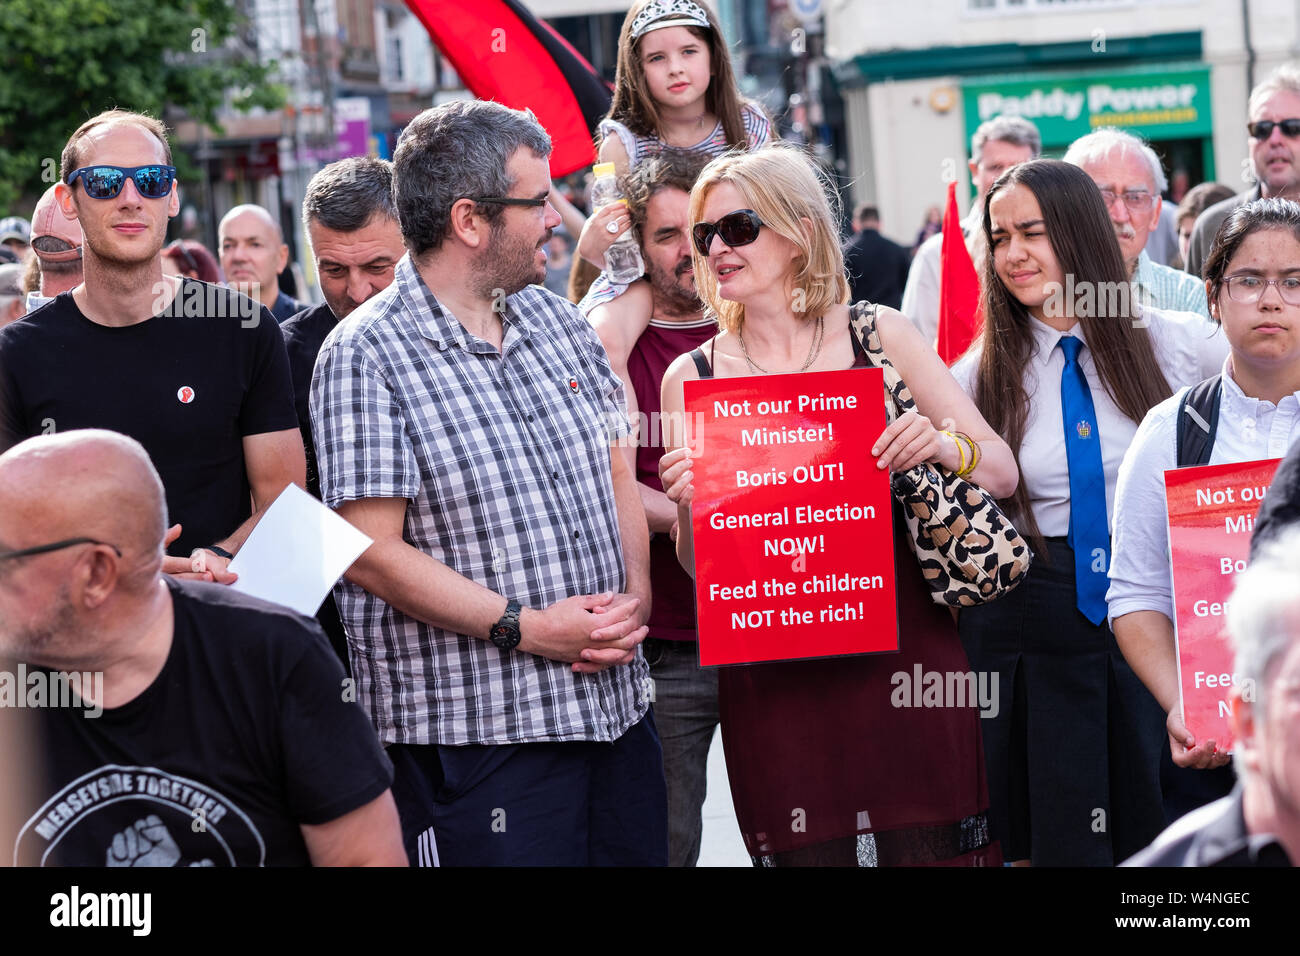 Liverpool, UK. July 24, 2019. Following today's proceedings in London where Boris Johnson took over from Theresa May as the Prime Minister of the United Kingdom, a rally was held in Williamson Square in Liverpool, north west England, against Boris Johnson becoming Prime Minster. Around 100 people attended, some holding banners and placards referring to the new Prime Minster, whilst some participants made speeches. Credit: Christopher Middleton/Alamy Live News Stock Photo